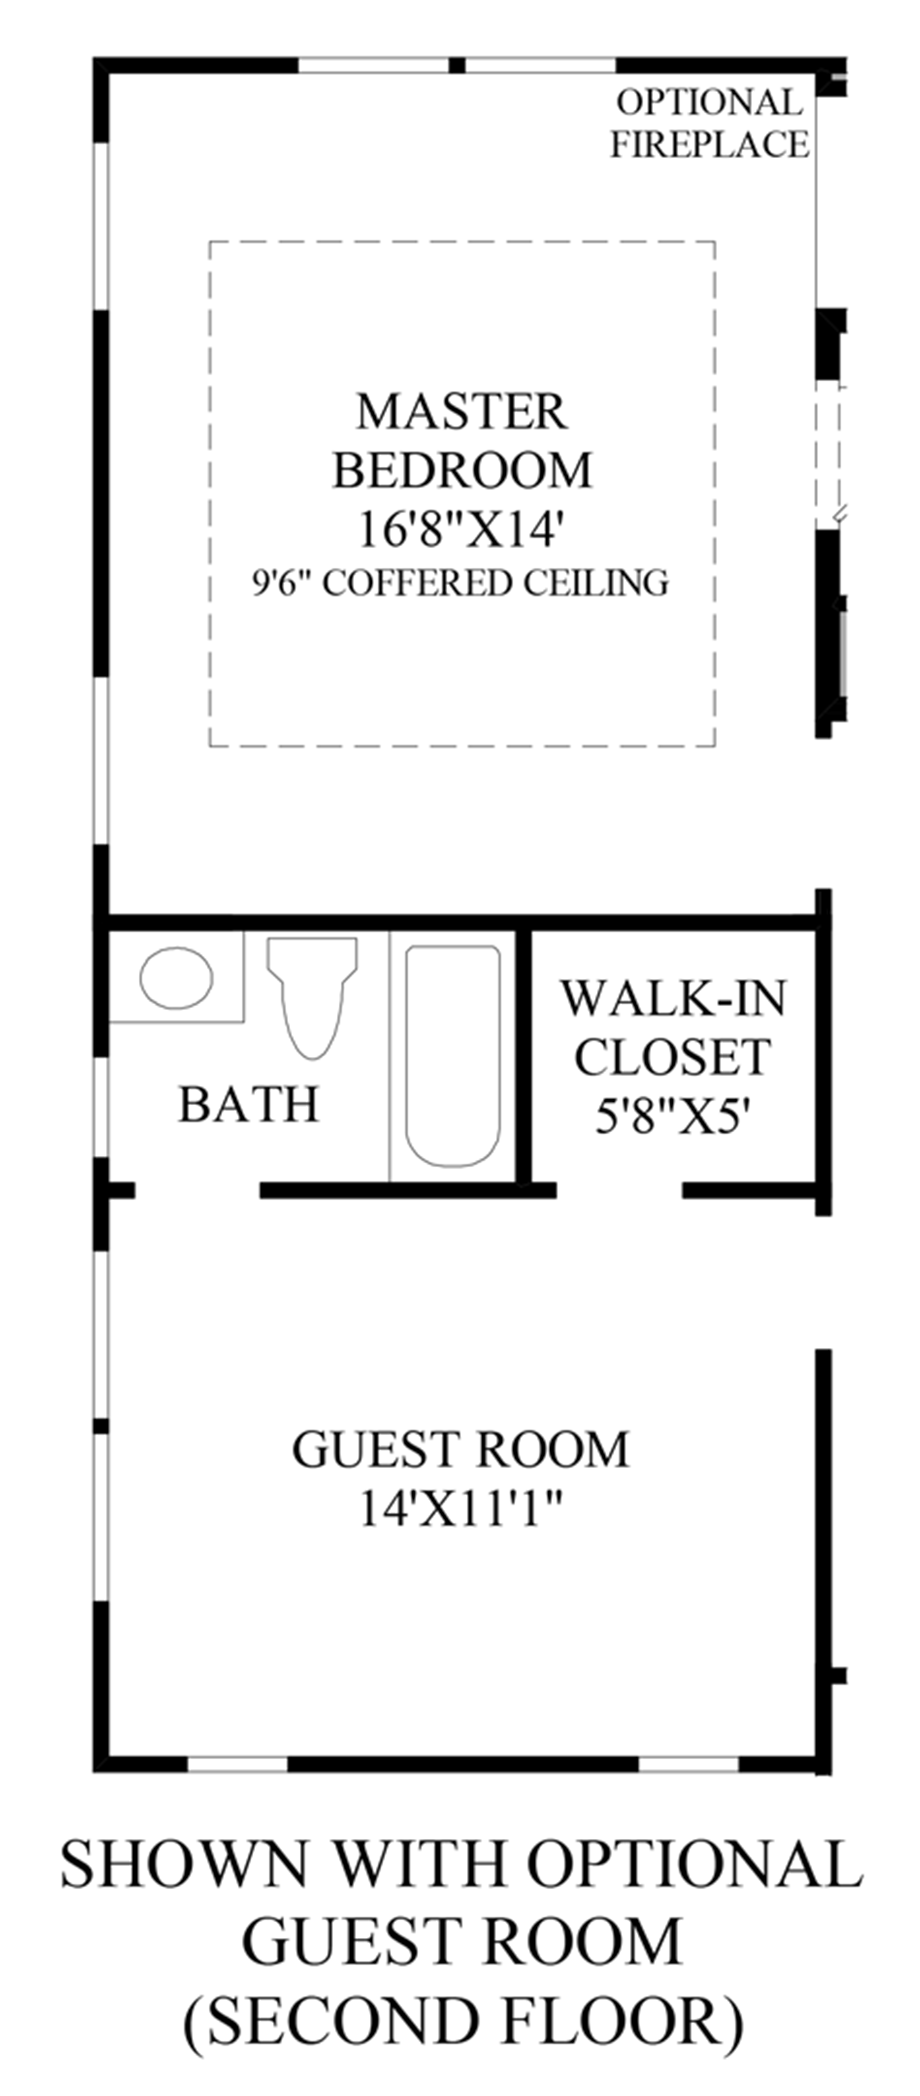 Optional Guest Room (Second Floor) Floor Plan